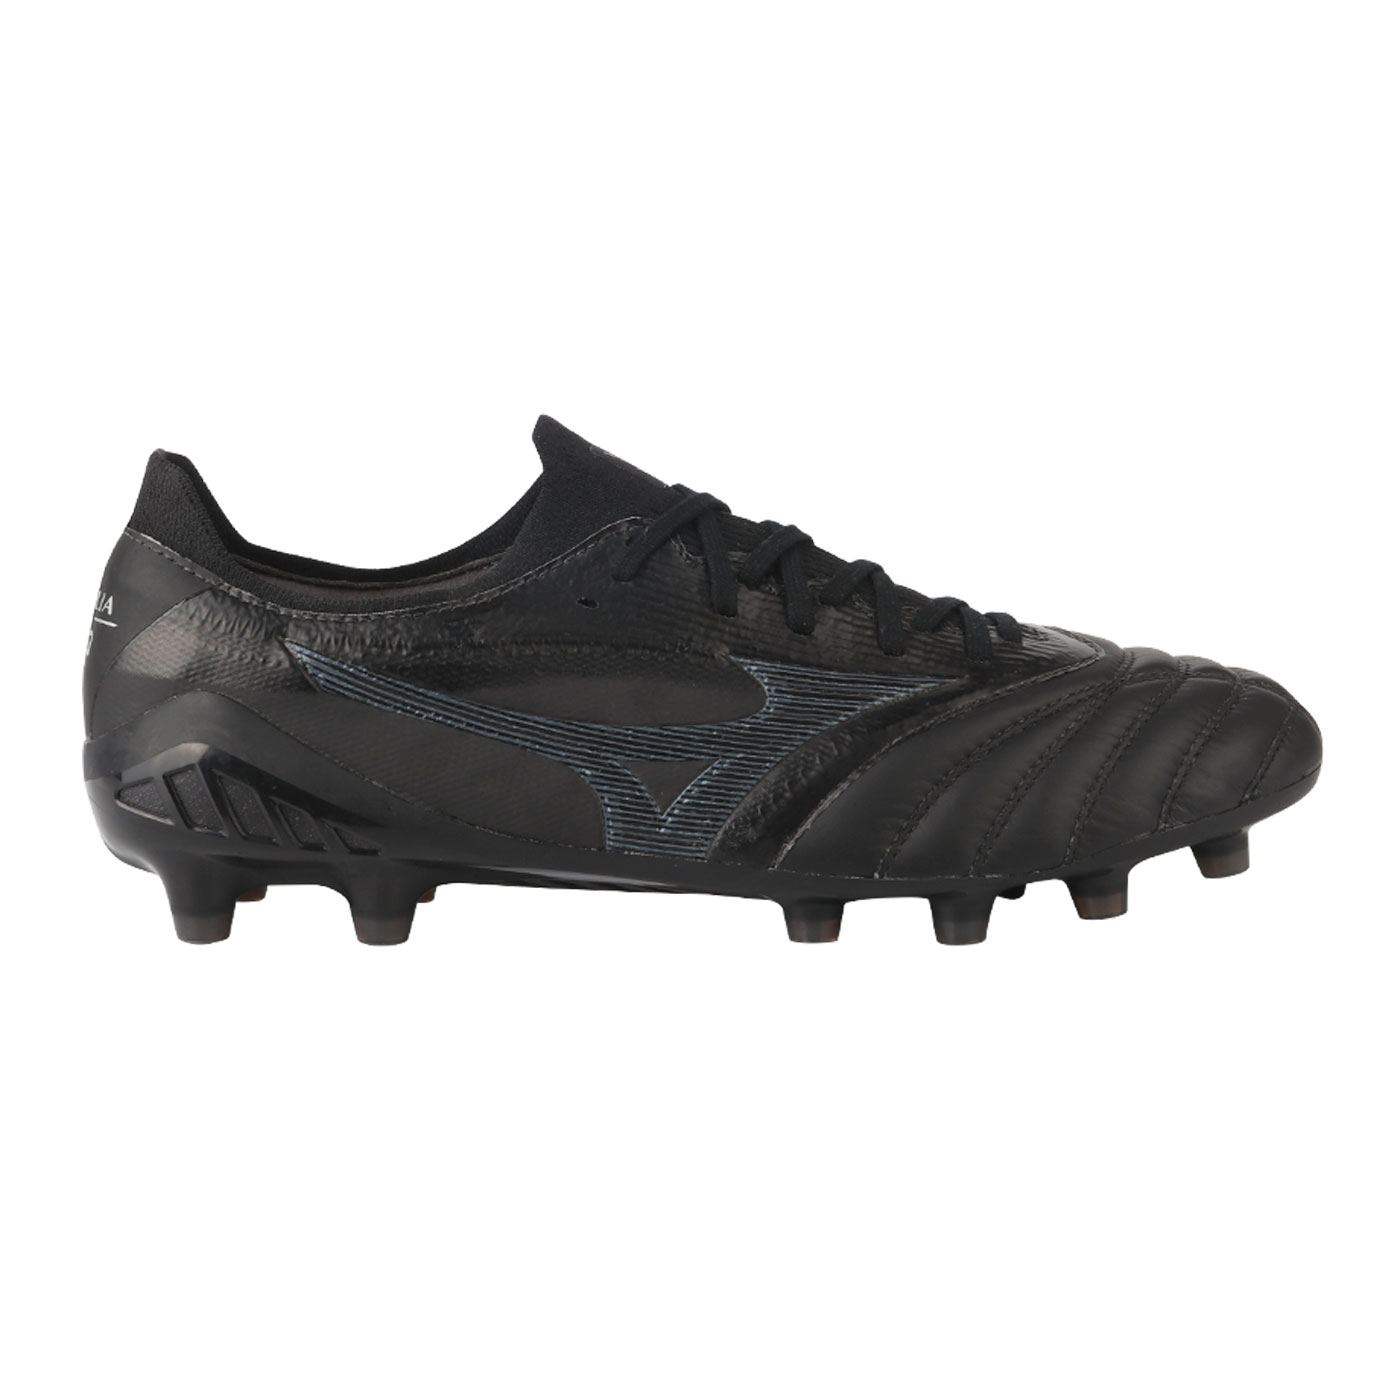 MORELIA NEO III BETA ELITE-BLACK/BLACK